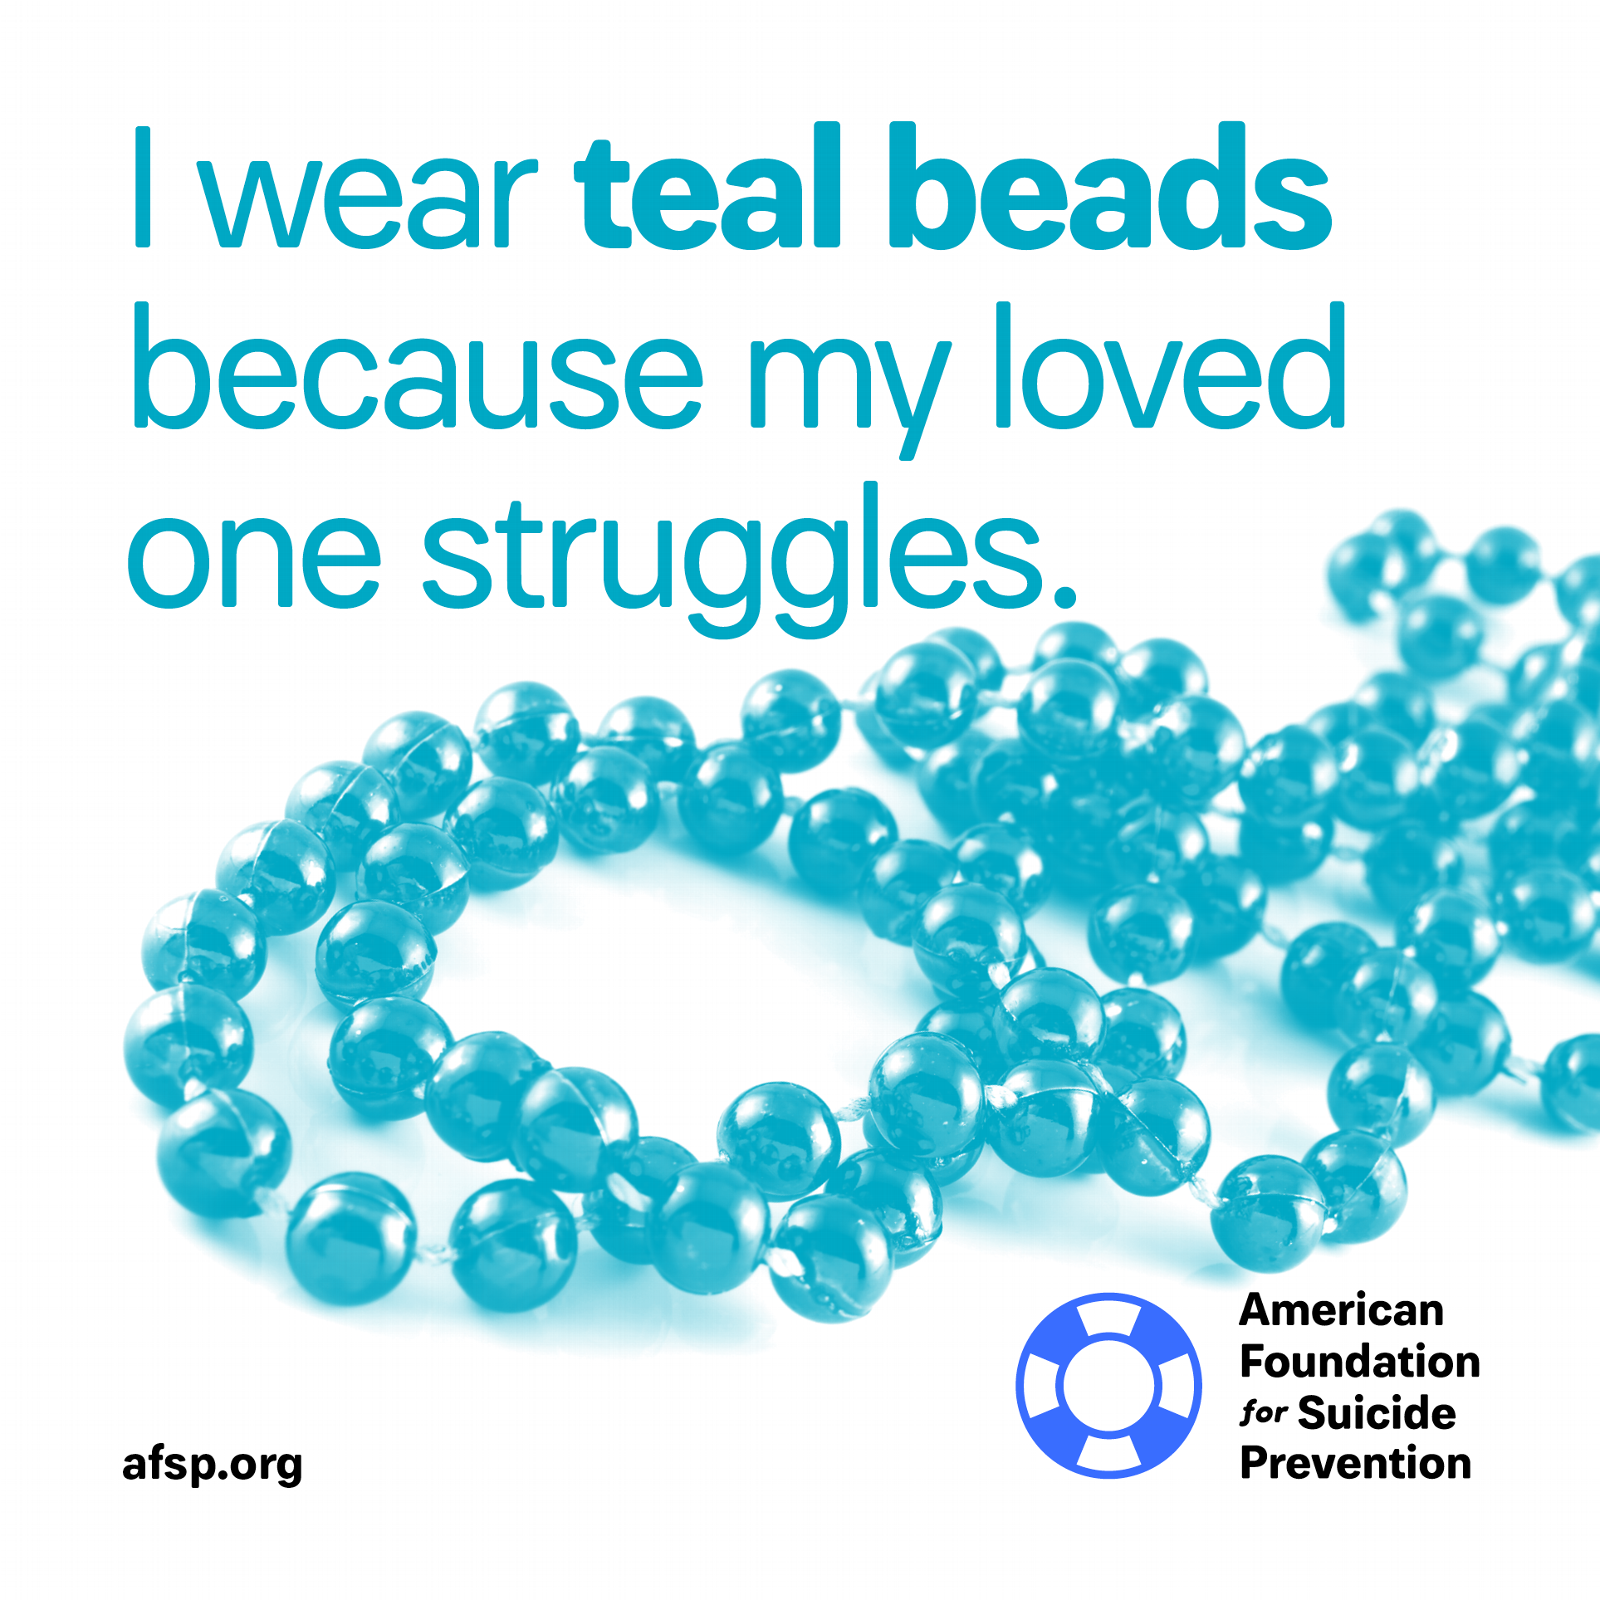 Teal beads because my loved one struggles